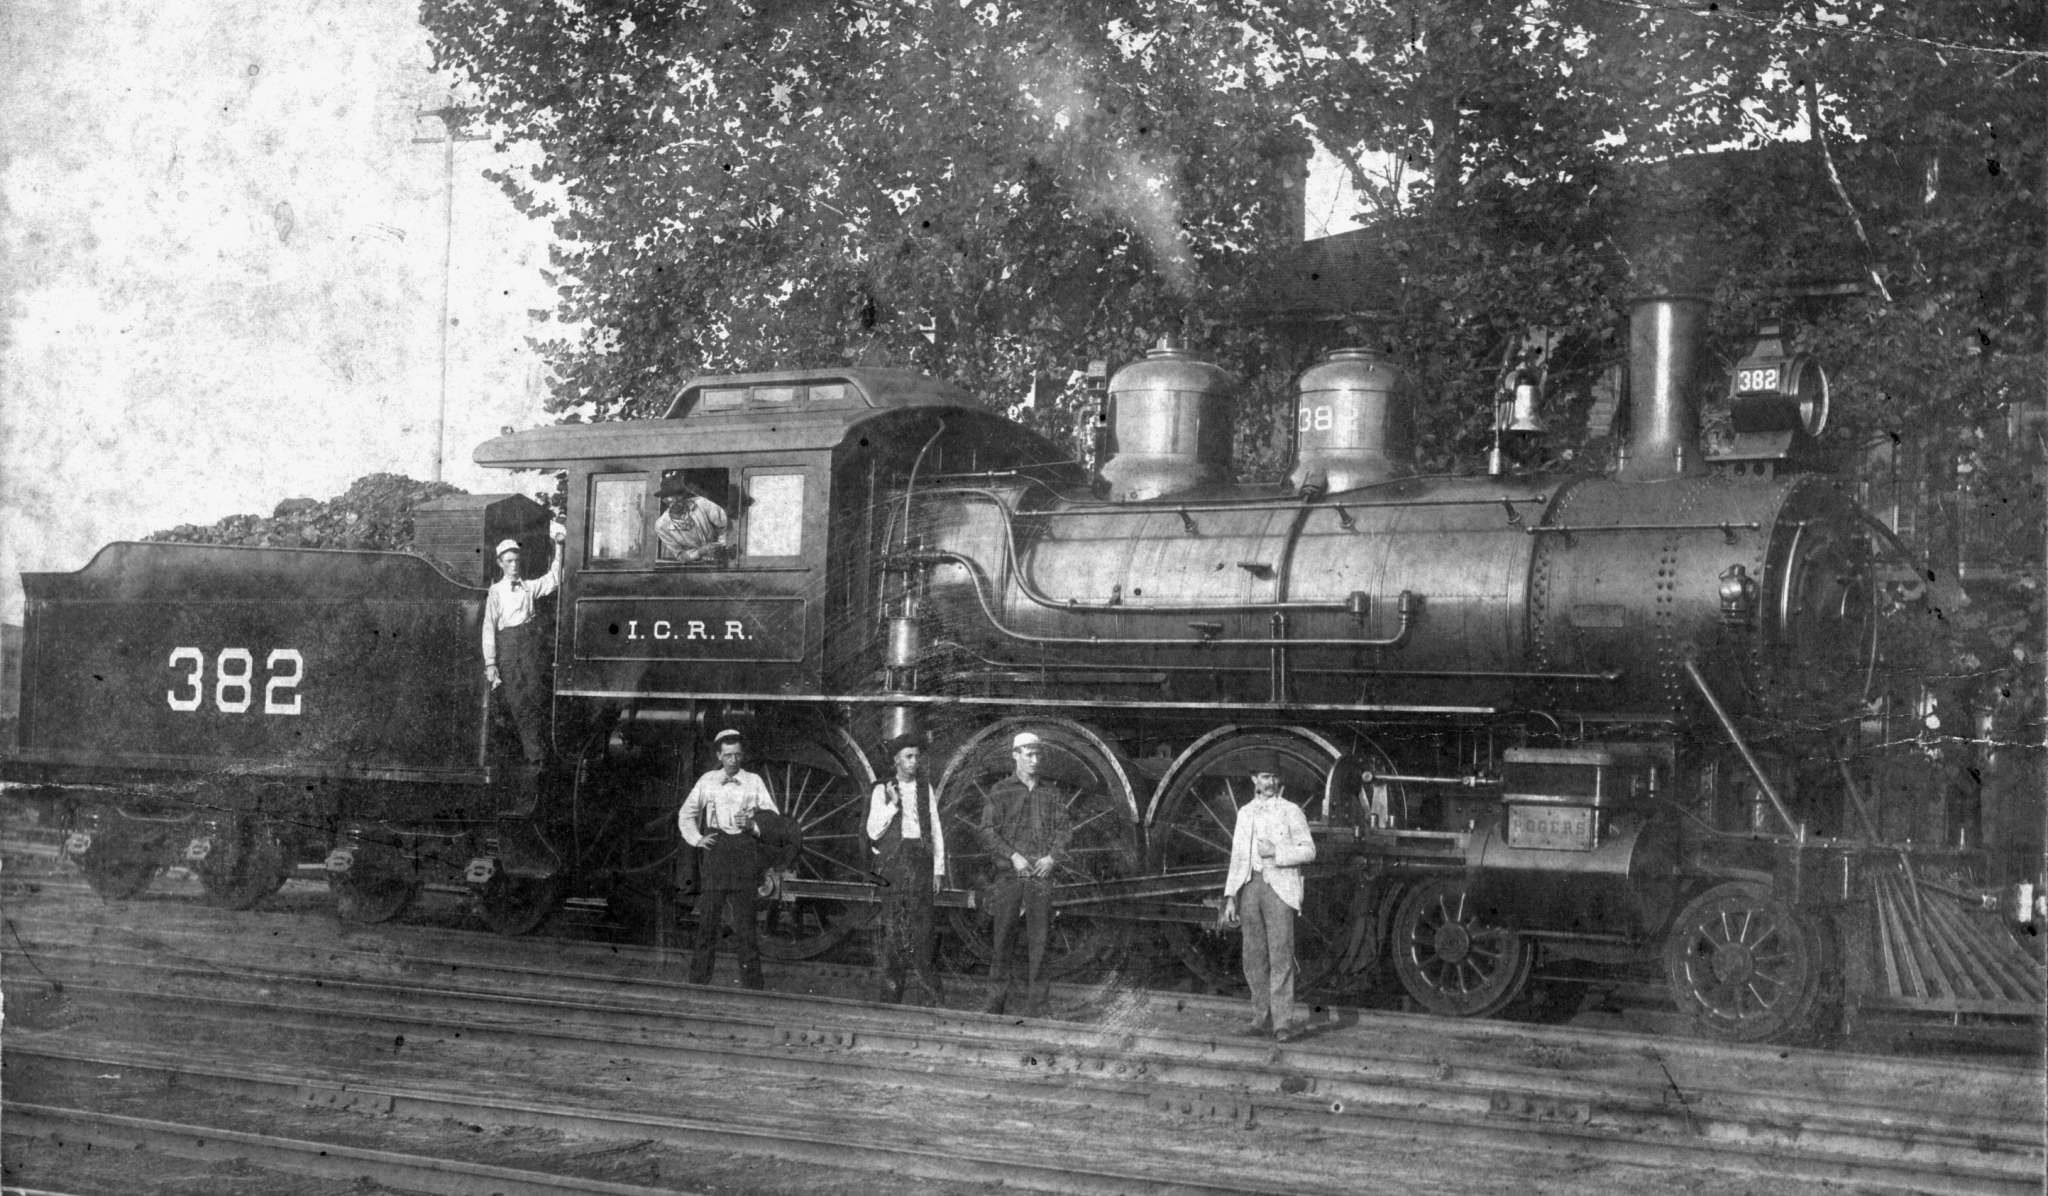 382 was a 4-6-0 Ten-Wheeler-type steam locomotive. It was built by the  Rogers Locomotive Works in 1898 for the Illinois Central and it was a very  powerful ...